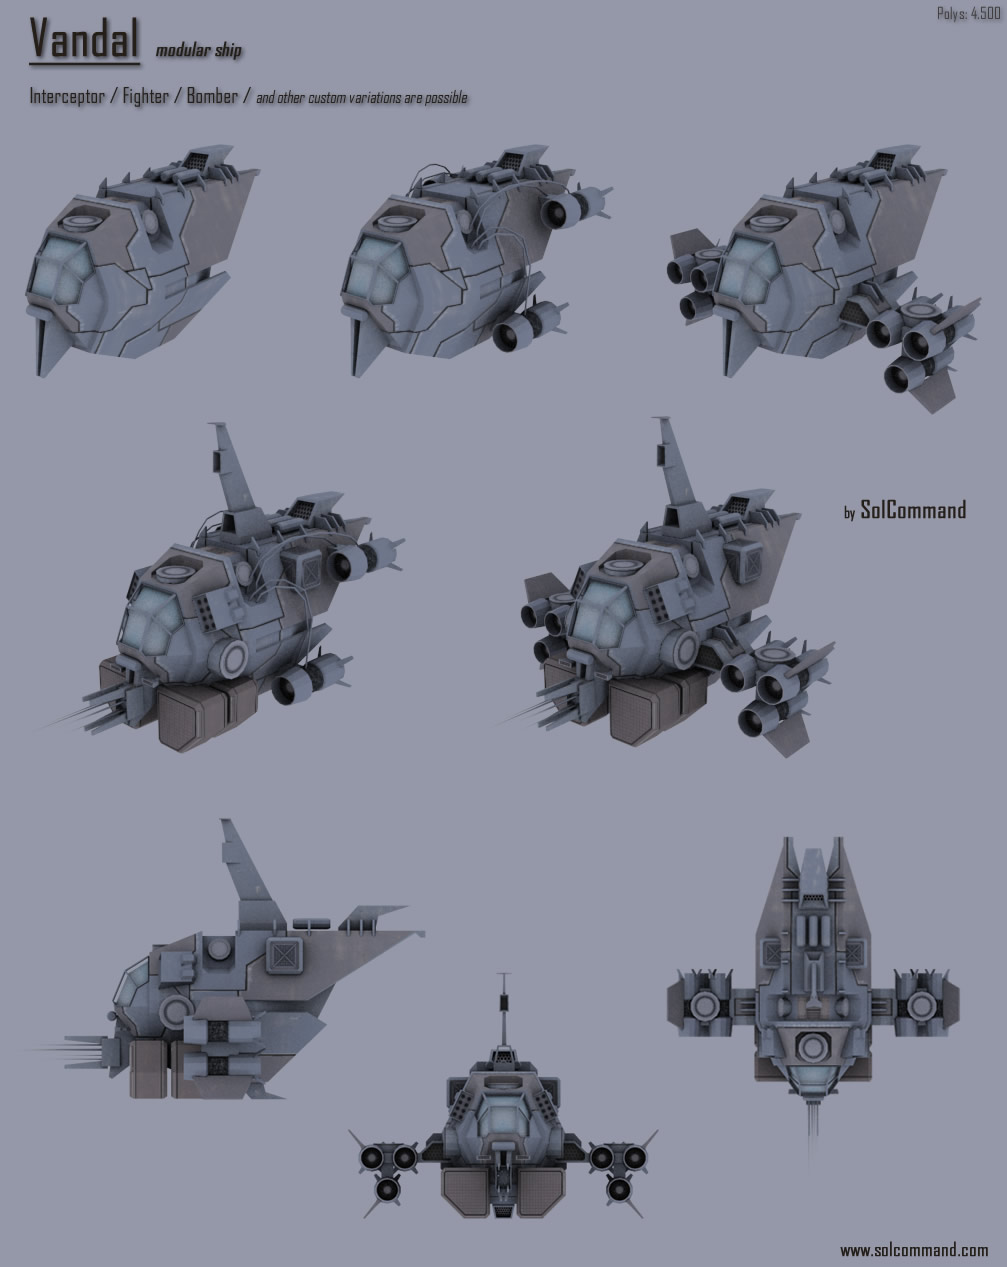 earth, terran, futuristic, sci fi, solcommand, 3d, free, download, low poly, textured, mesh, game ready, space, concept, modular, spaceship, fighter, bomber, interceptor, modules, vandal, outlaw, pilot, mining, criminal, raider, colony, convoy, transport, cargo, design,